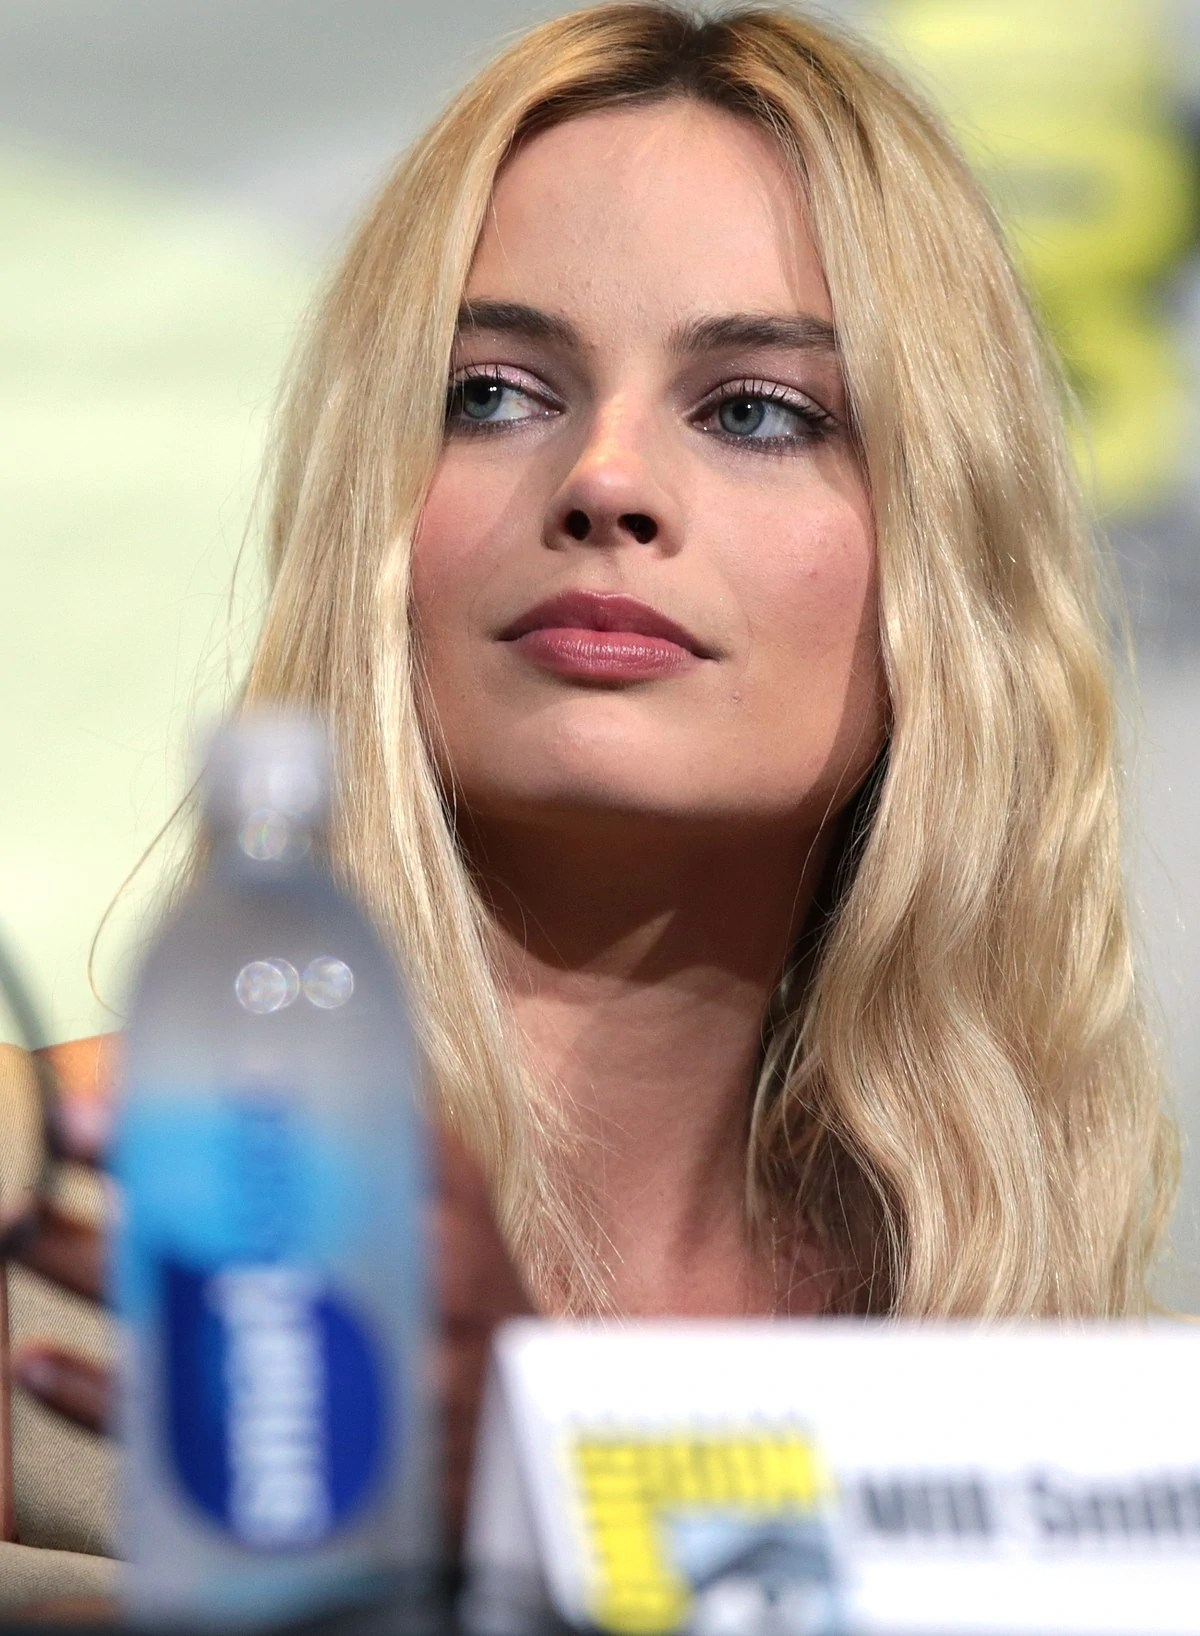 CategoryCharacters Voiced Andor Played By Margot Robbie